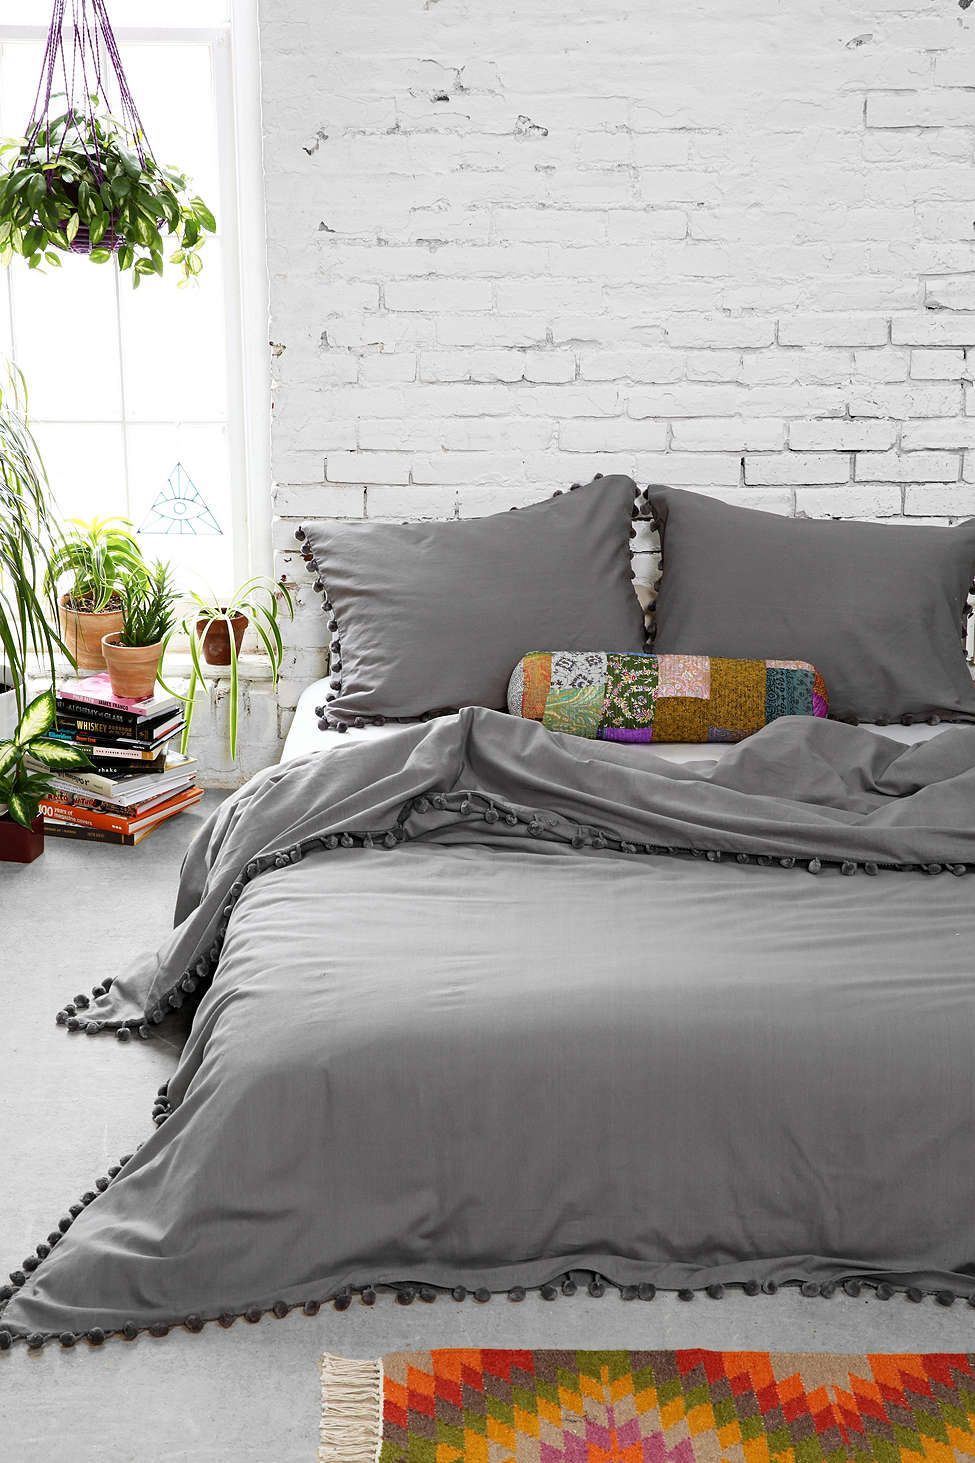 sets cover from free home queen item shipping hotel cotton fast washed fitted bedding sheet gray solid color in duvet king set